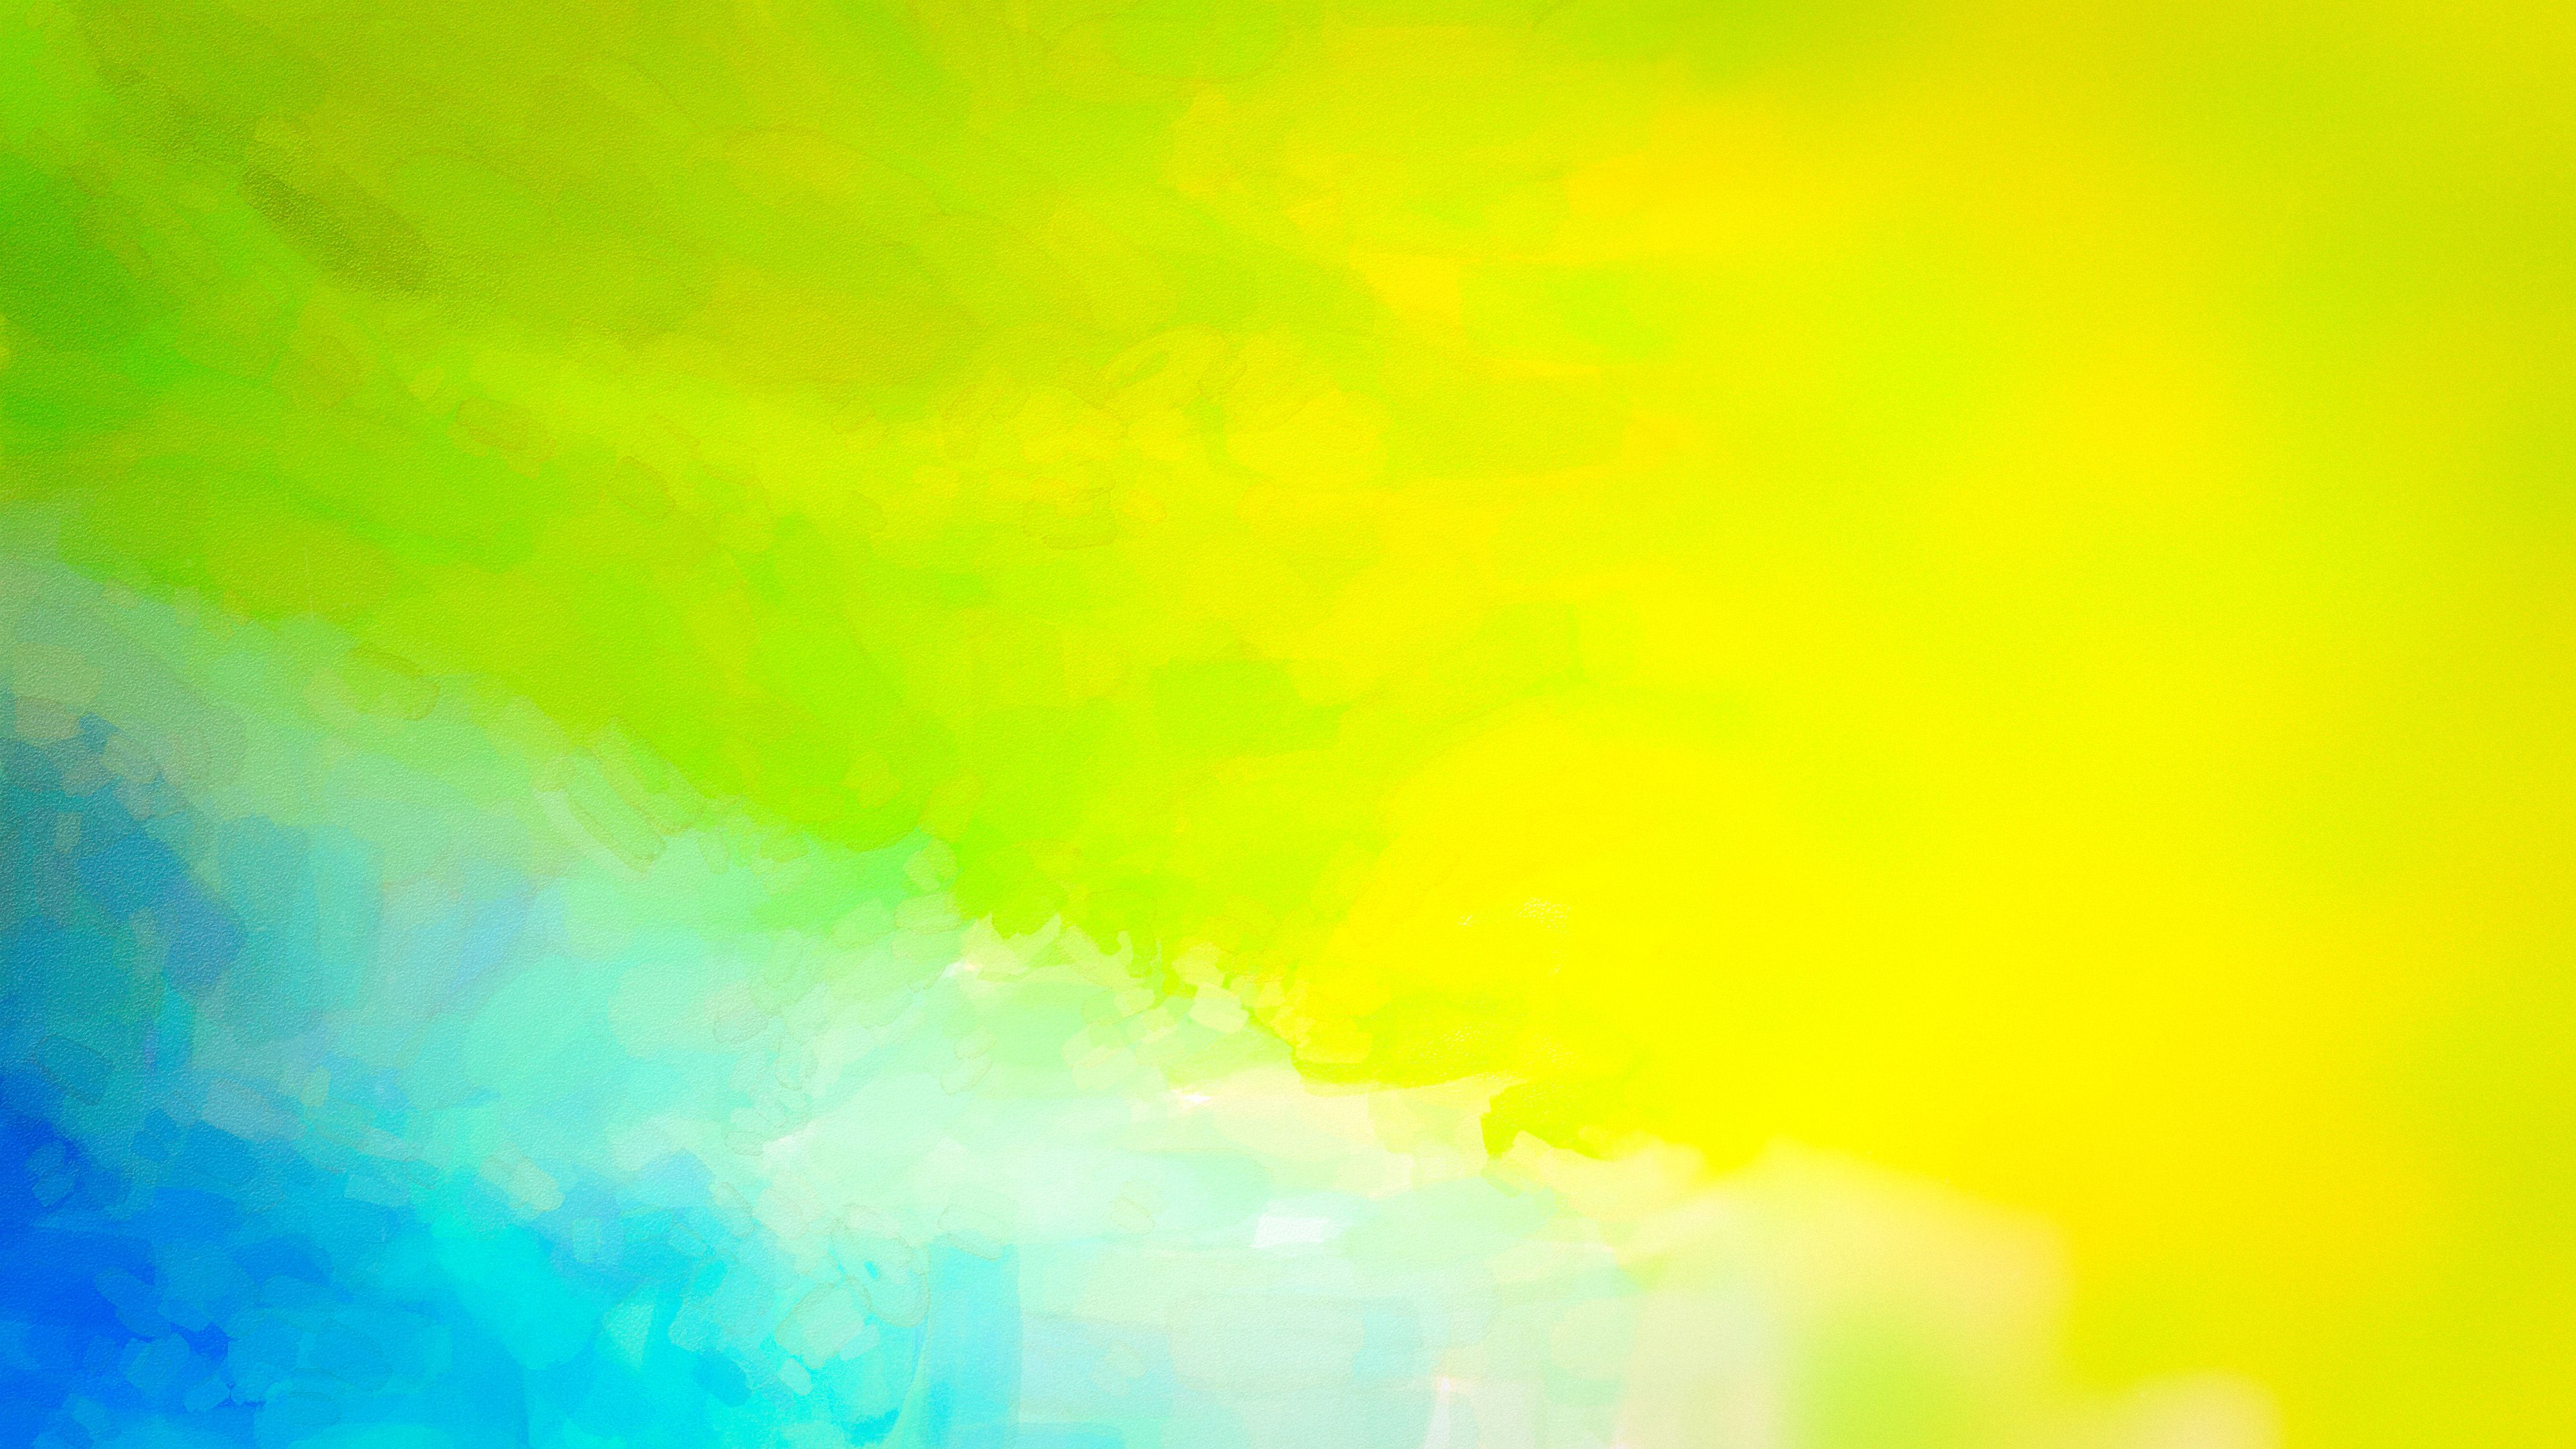 Green Blue Yellow Free Background Image Design Graphicdesign Creative Wallpaper Backg Free Background Images Background Images Blue Background Images